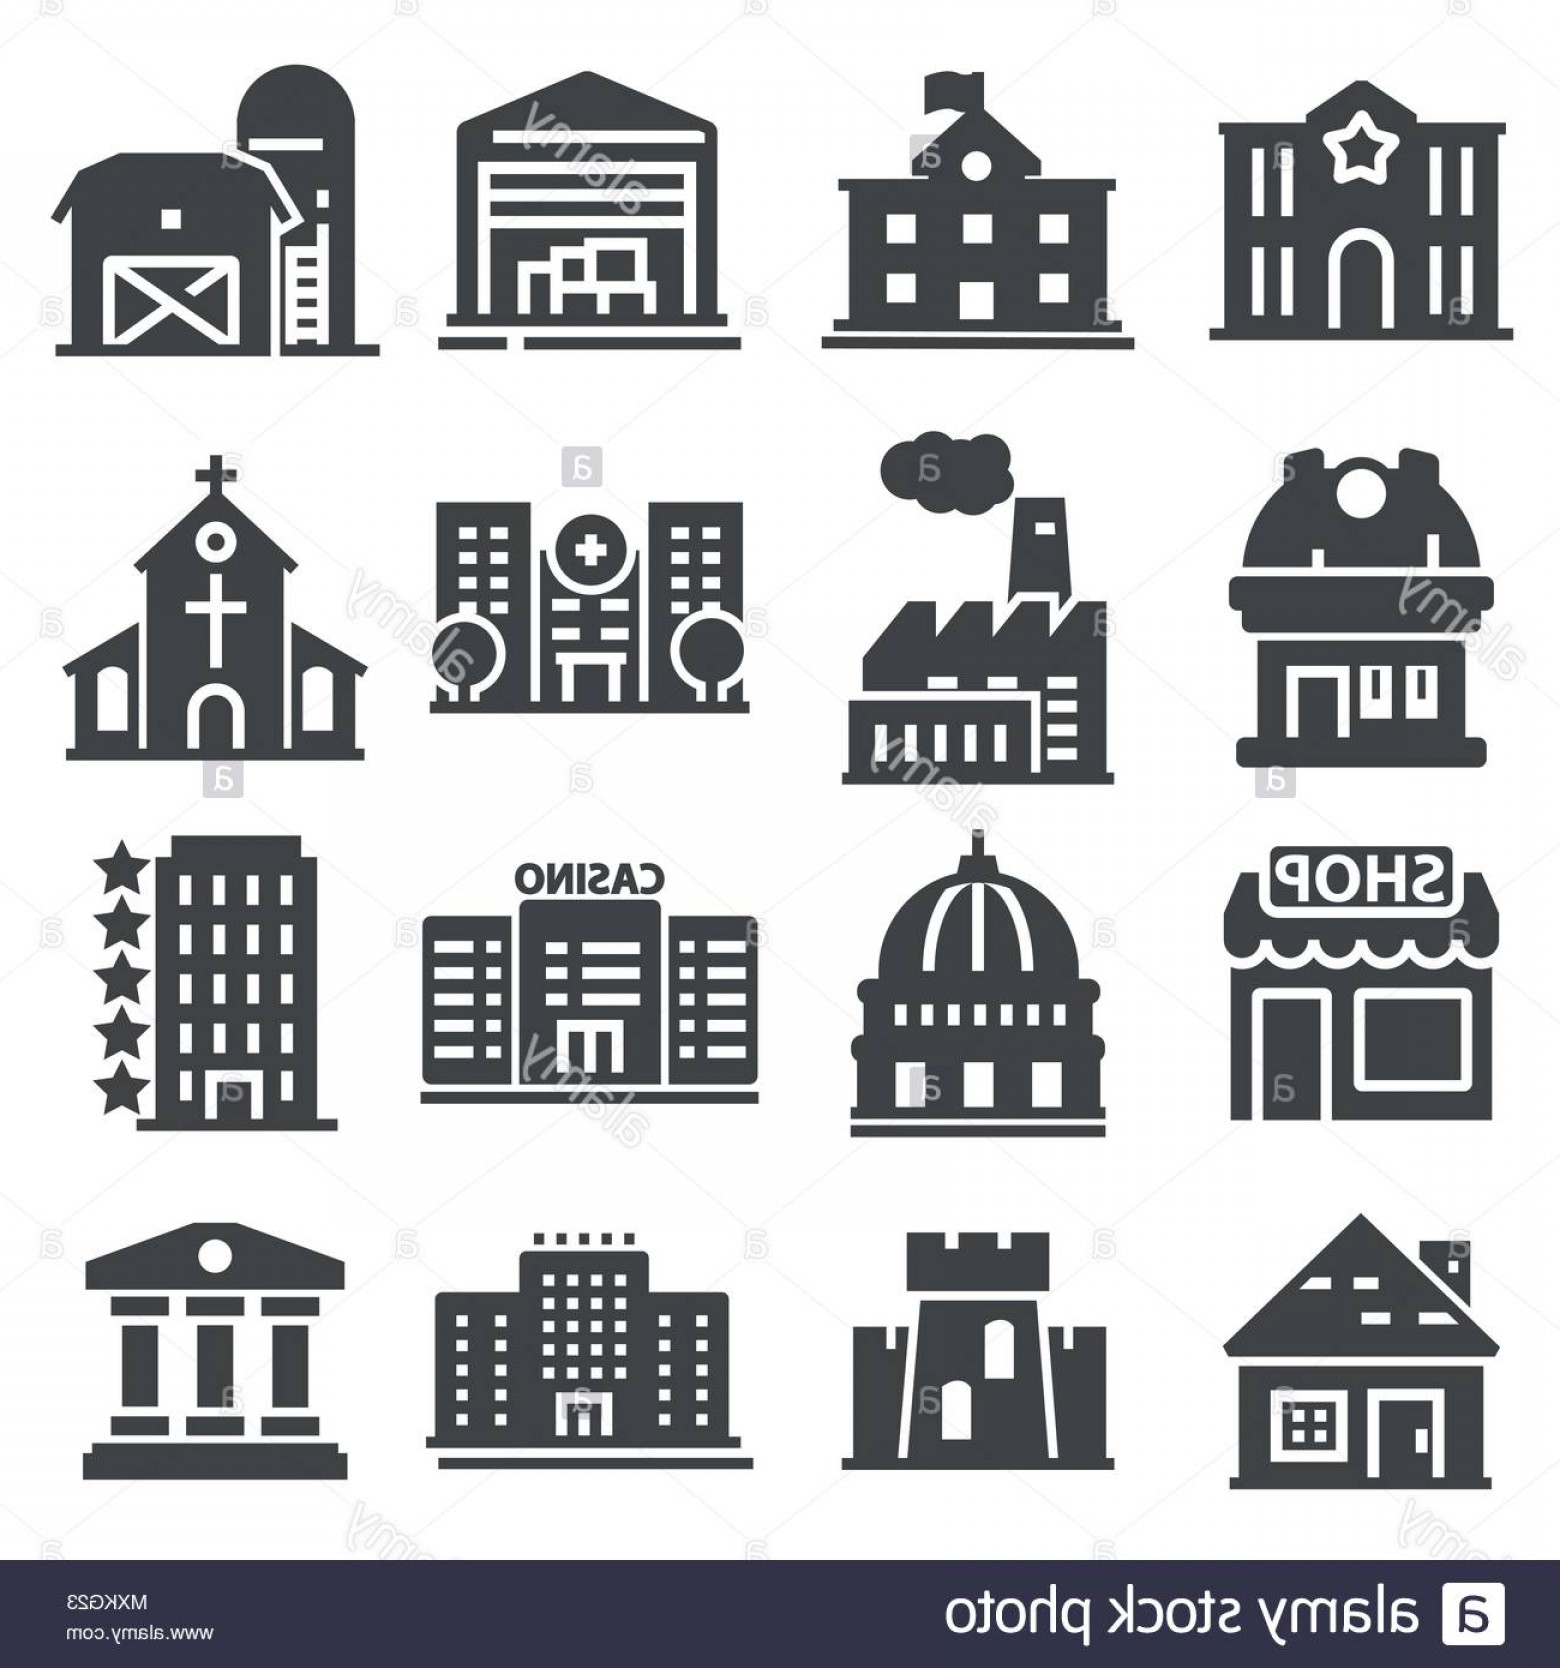 Vector Clip Art Red Schoolhouse: Government Building Icons Set Of Police School House Isolated Vector Illustration Image